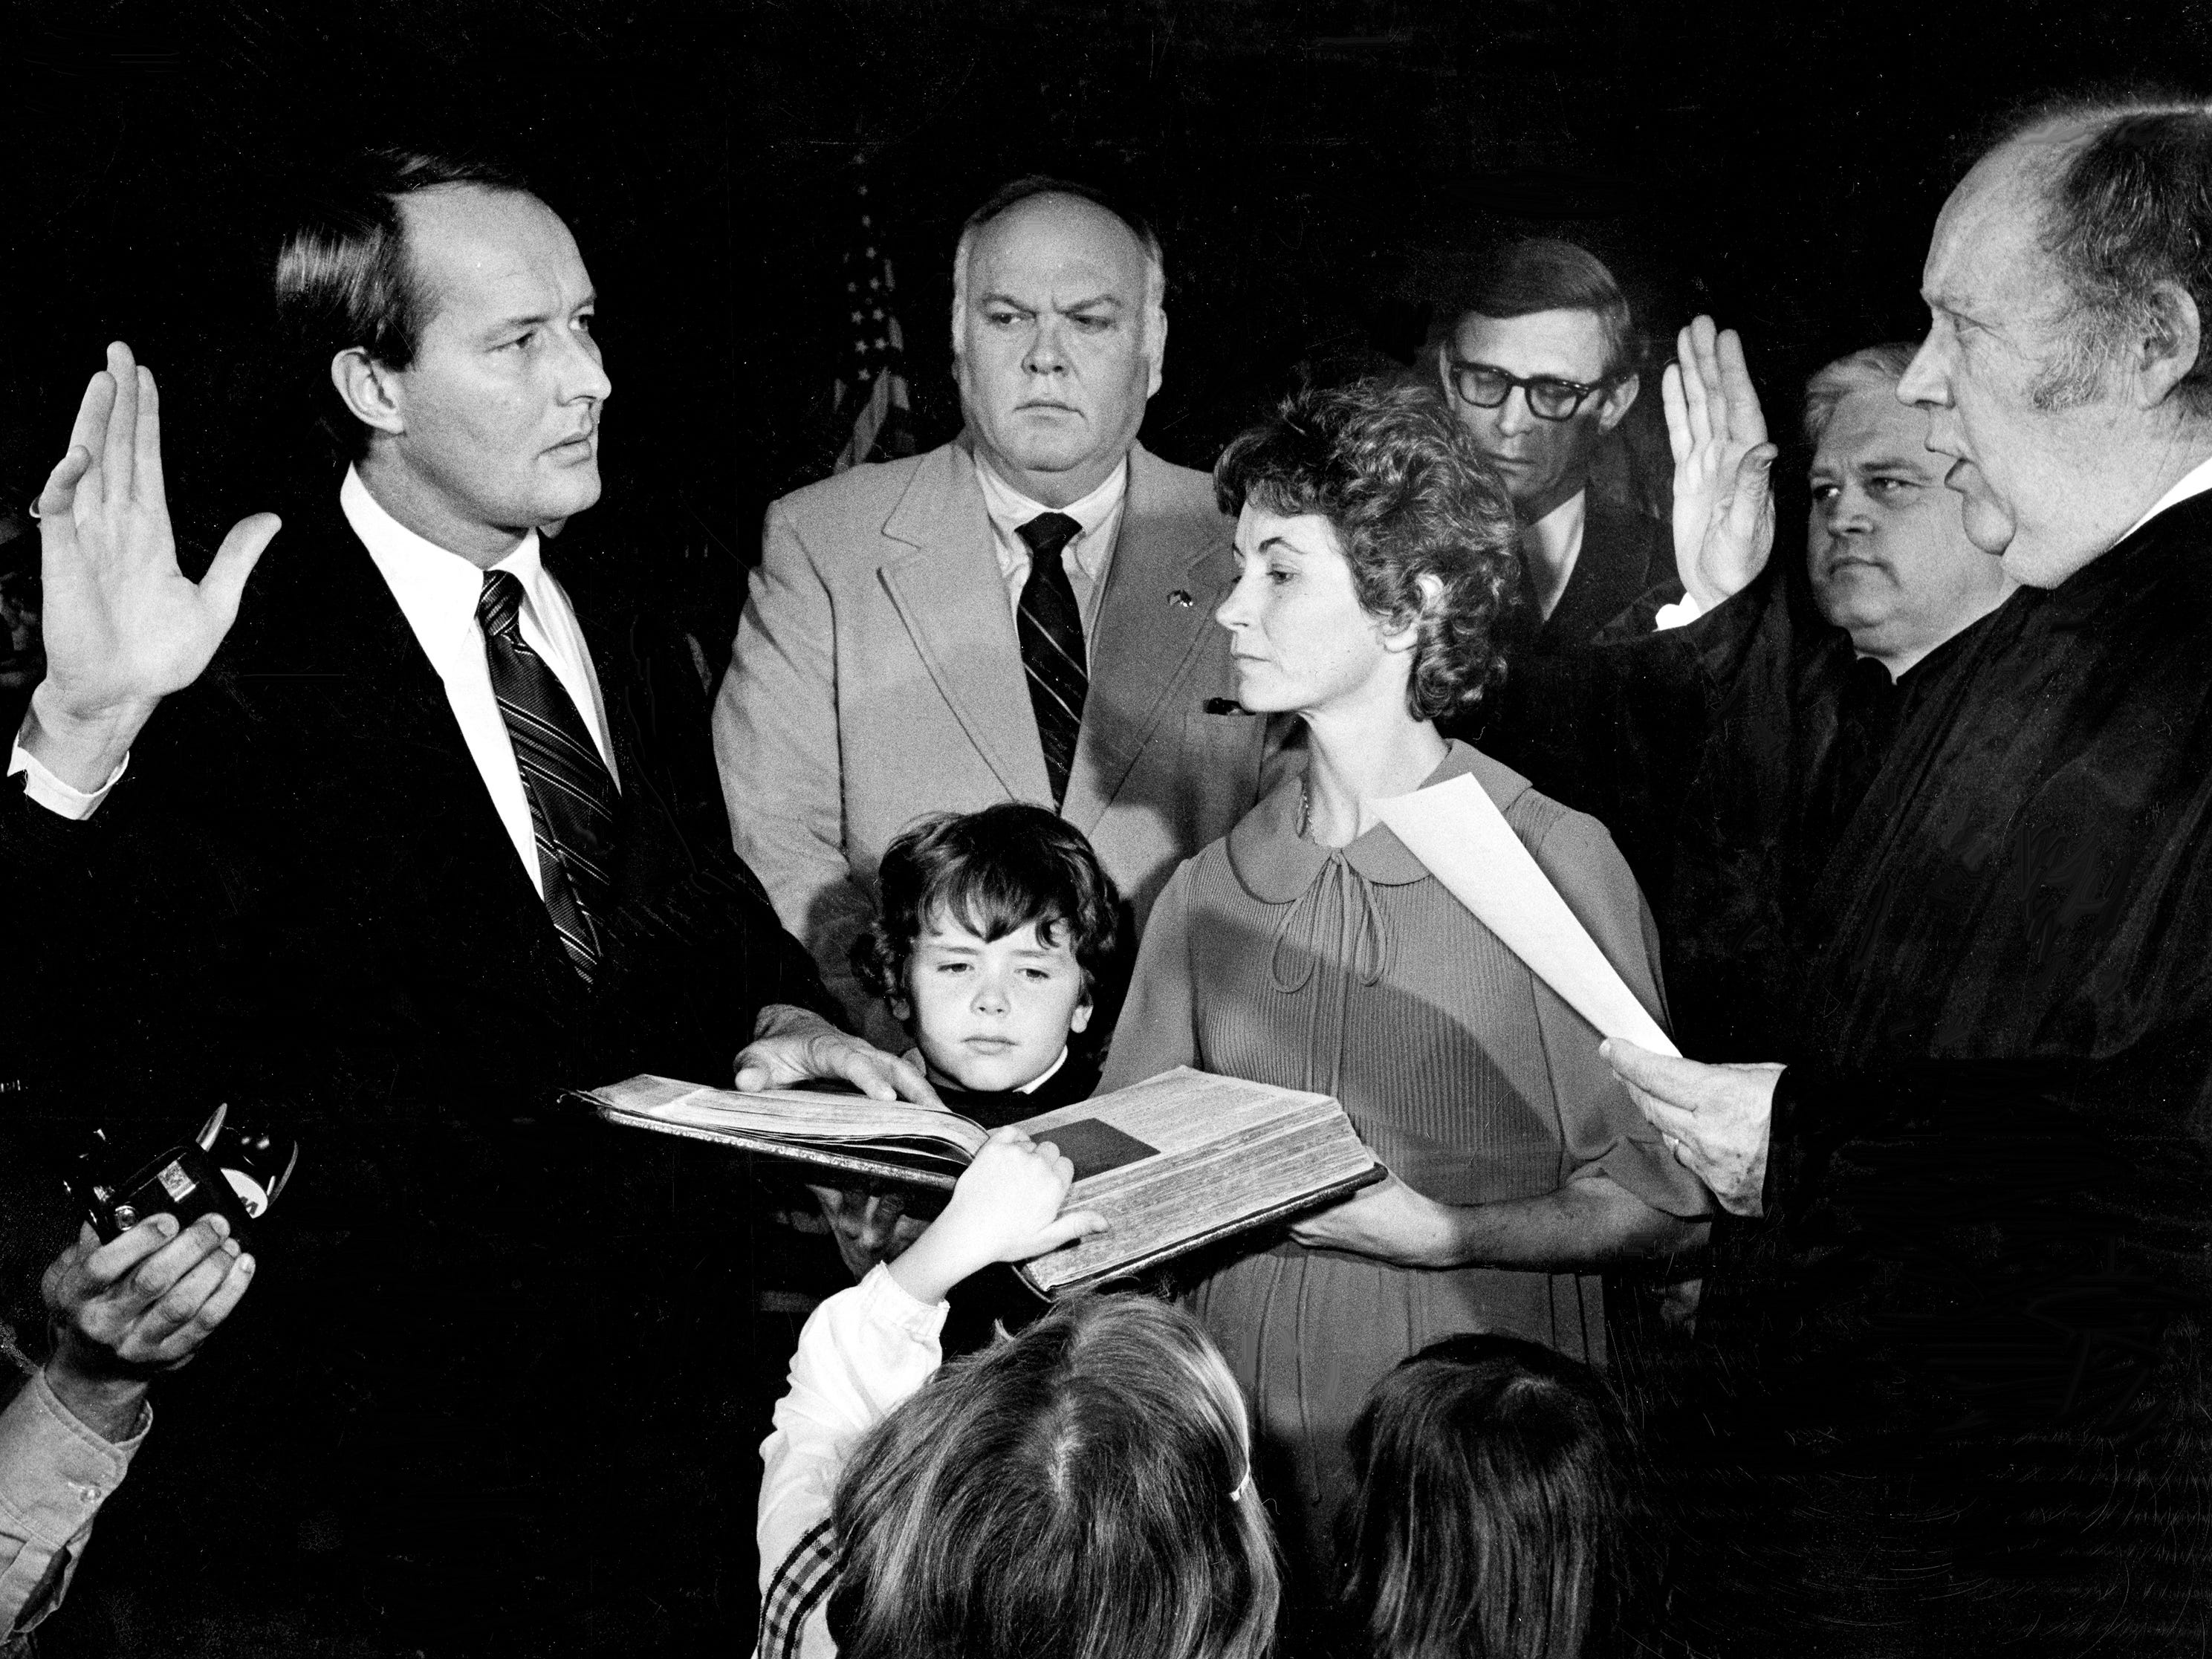 His hand resting on the 110-year-old family Bible, Gov.-elected Lamar Alexander, left, takes the oath of office from Chief Justice Joe Henry, right, four days earlier on Jan. 17, 1979. Alexander's wife Honey holds the Bible as children Drew and Leslee place their hands on the pages as House Speaker Ned McWherter, Attorney General William Leech and Secretary of State Gentry Crowell watch.